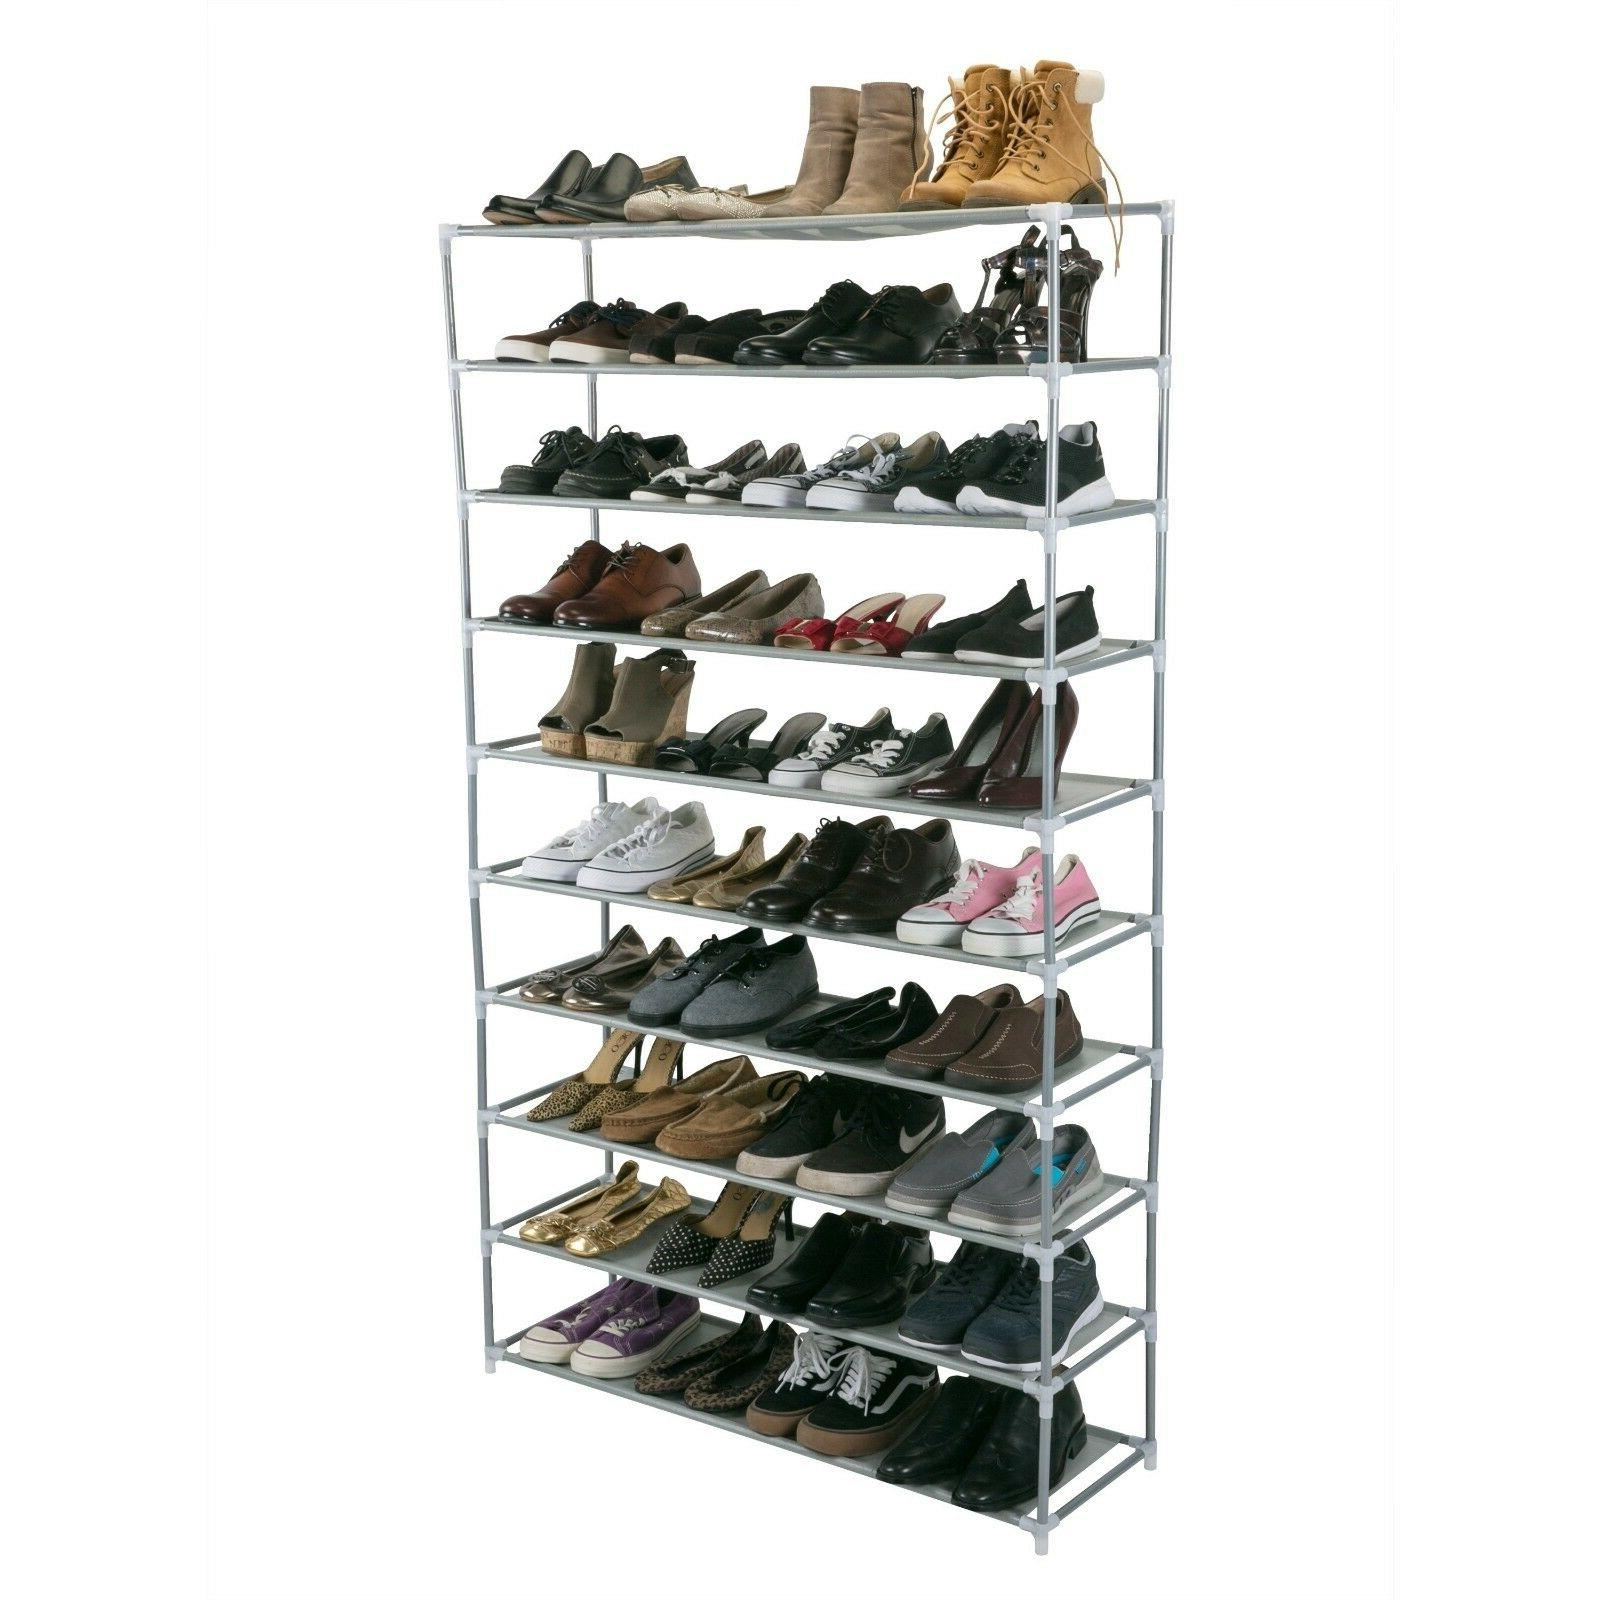 50 Pair Extra Long Shoe Rack METAL STURDY - 10 Tiers Simplif